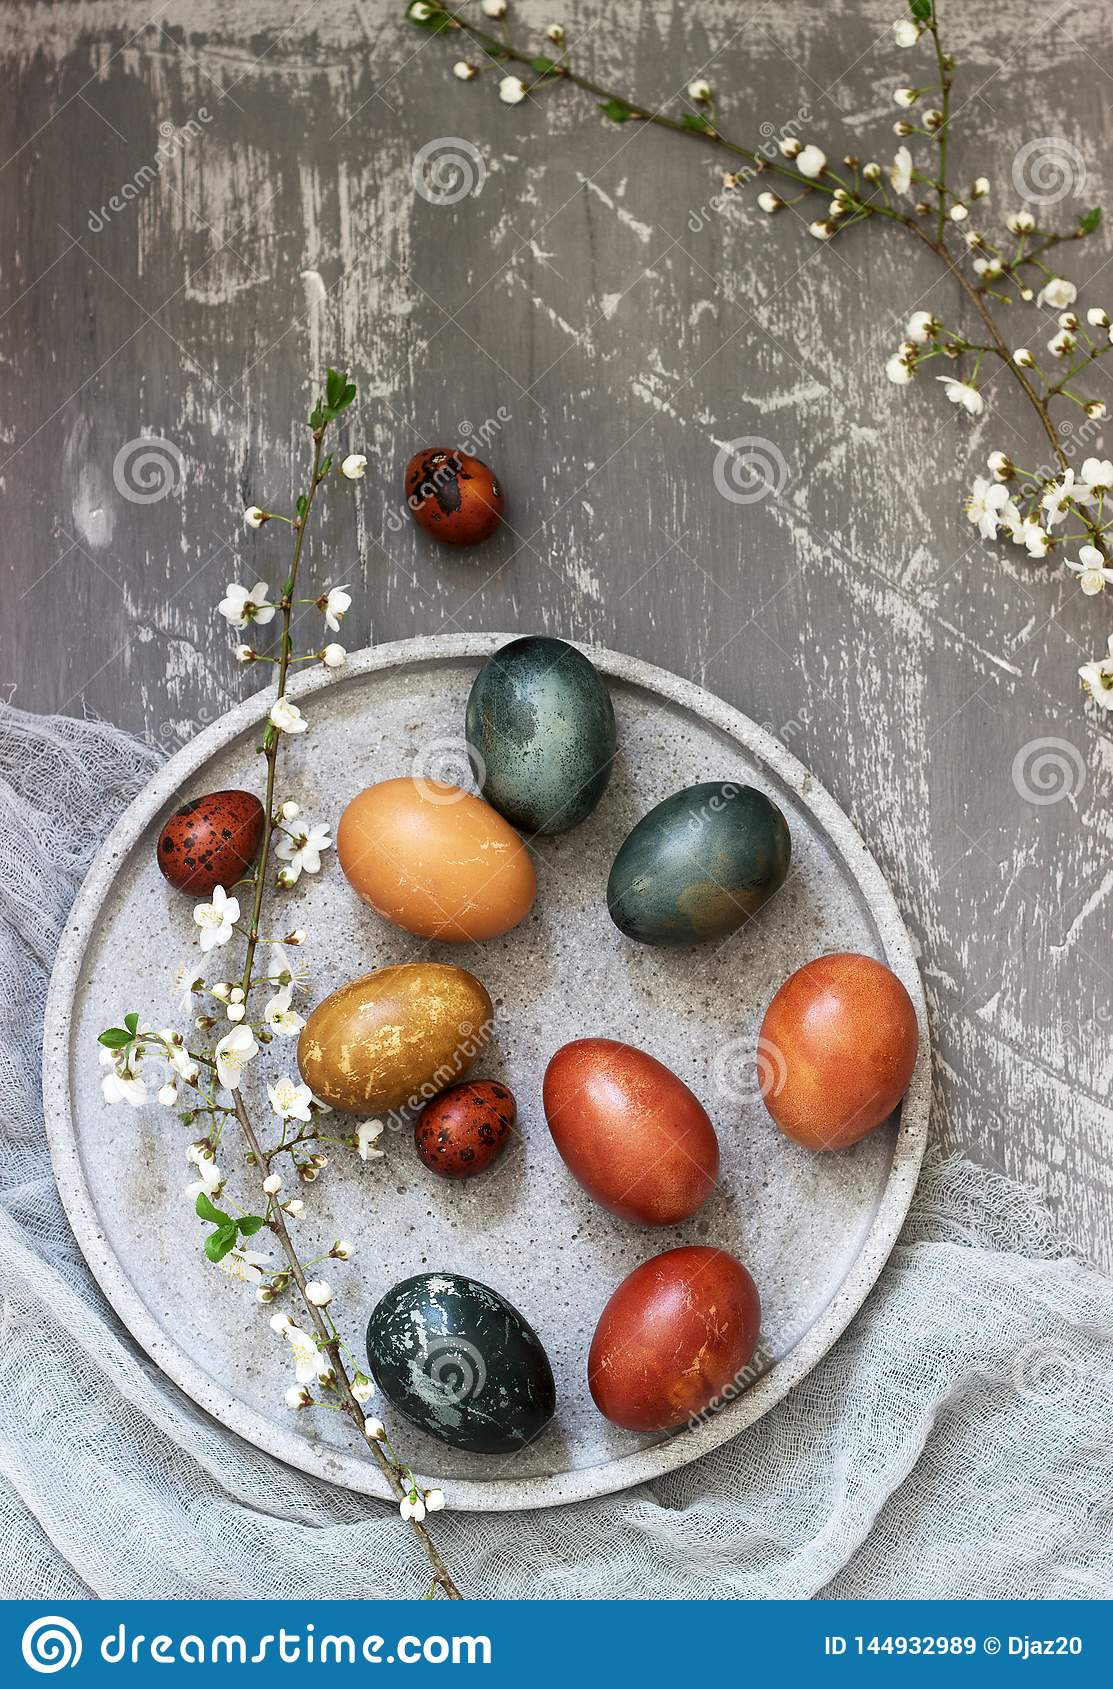 Easter eggs dyed with natural dyes, cabbage, chamomile, hibiscus and onion peel.